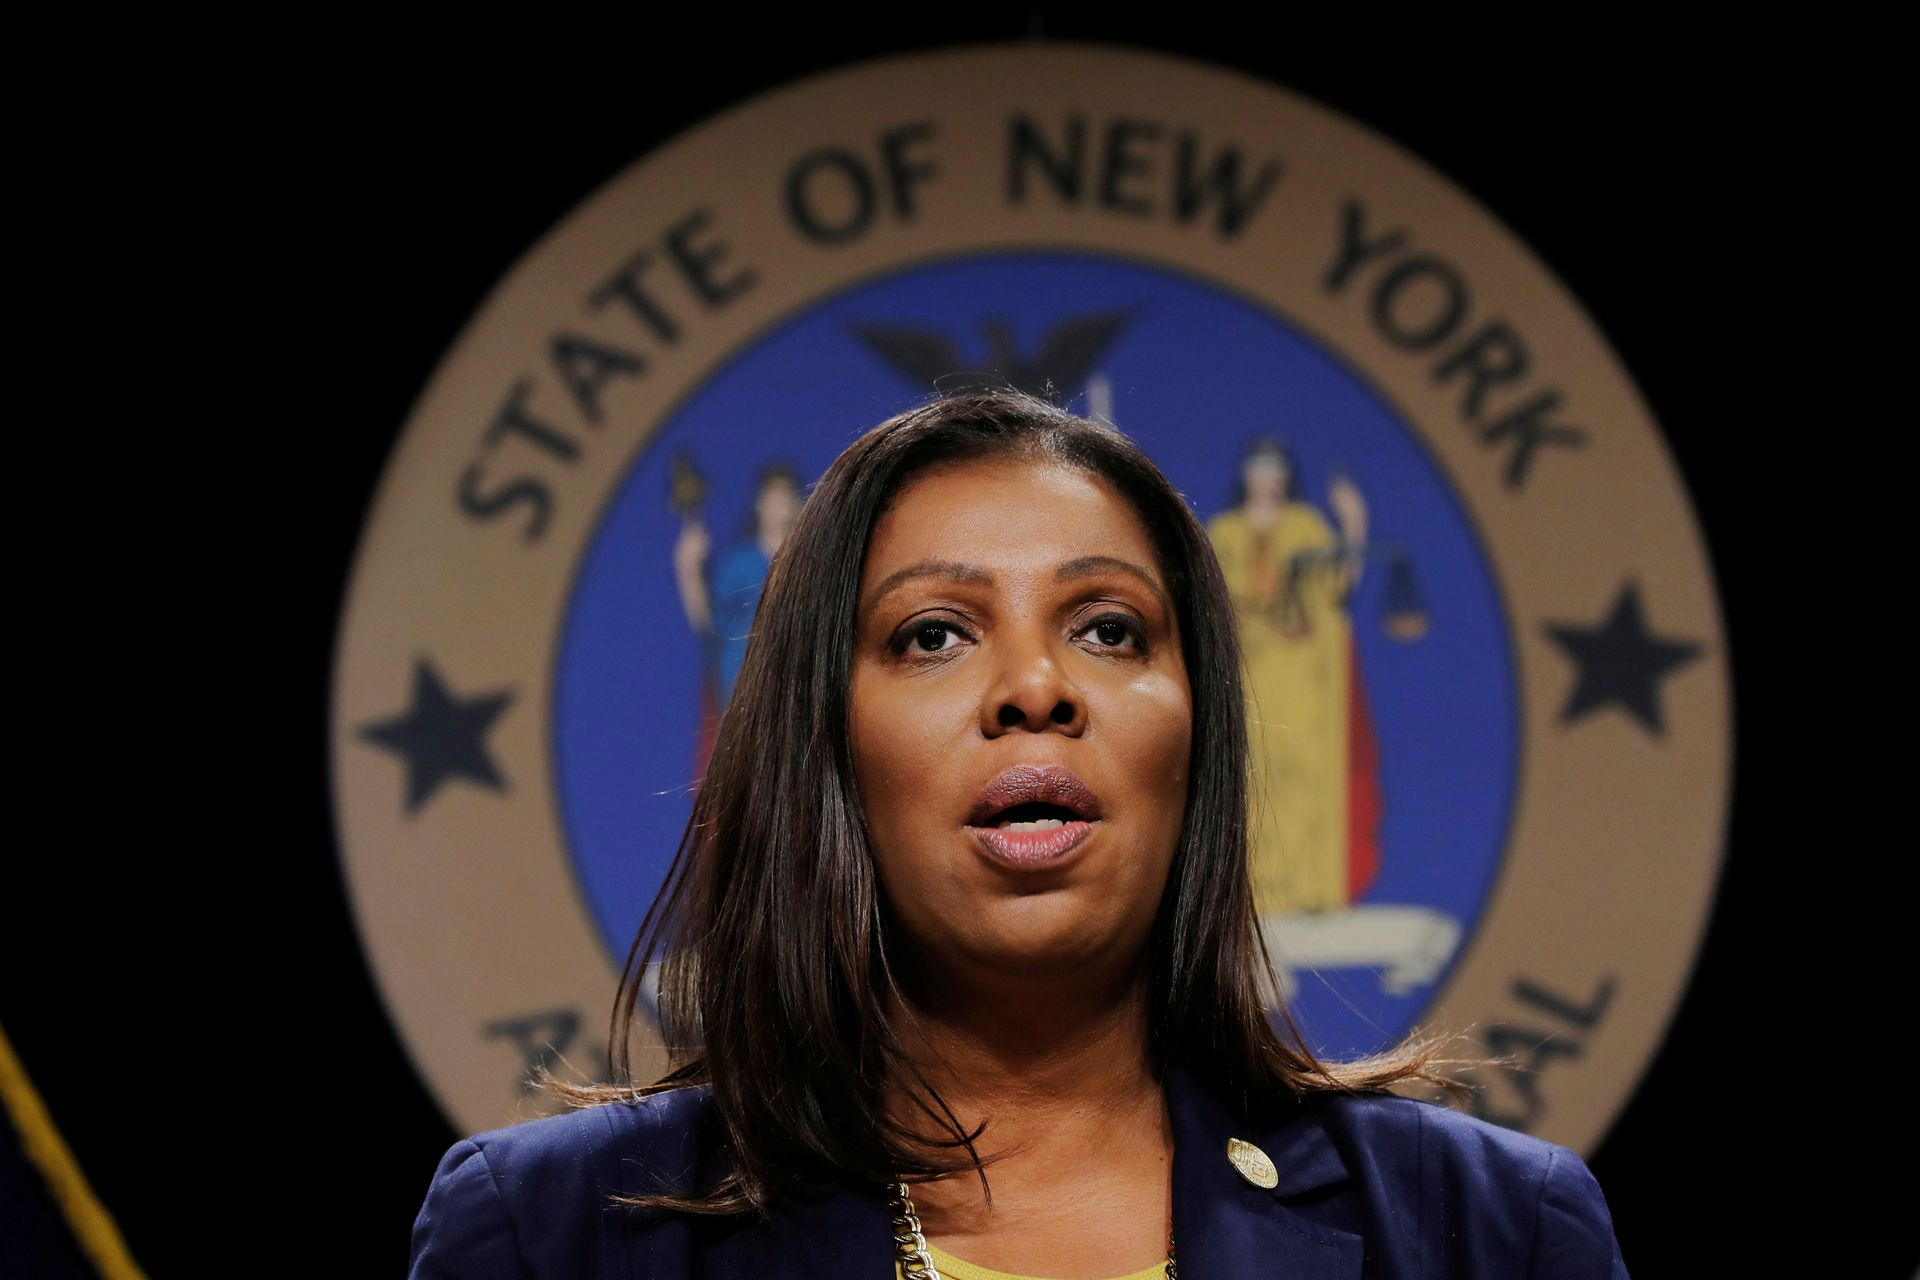 New York AG Letitia James Criticized for Not Handling Daniel Prude's Police-Involved Death With 'Same Focus and Determination' as Cuomo Investigation